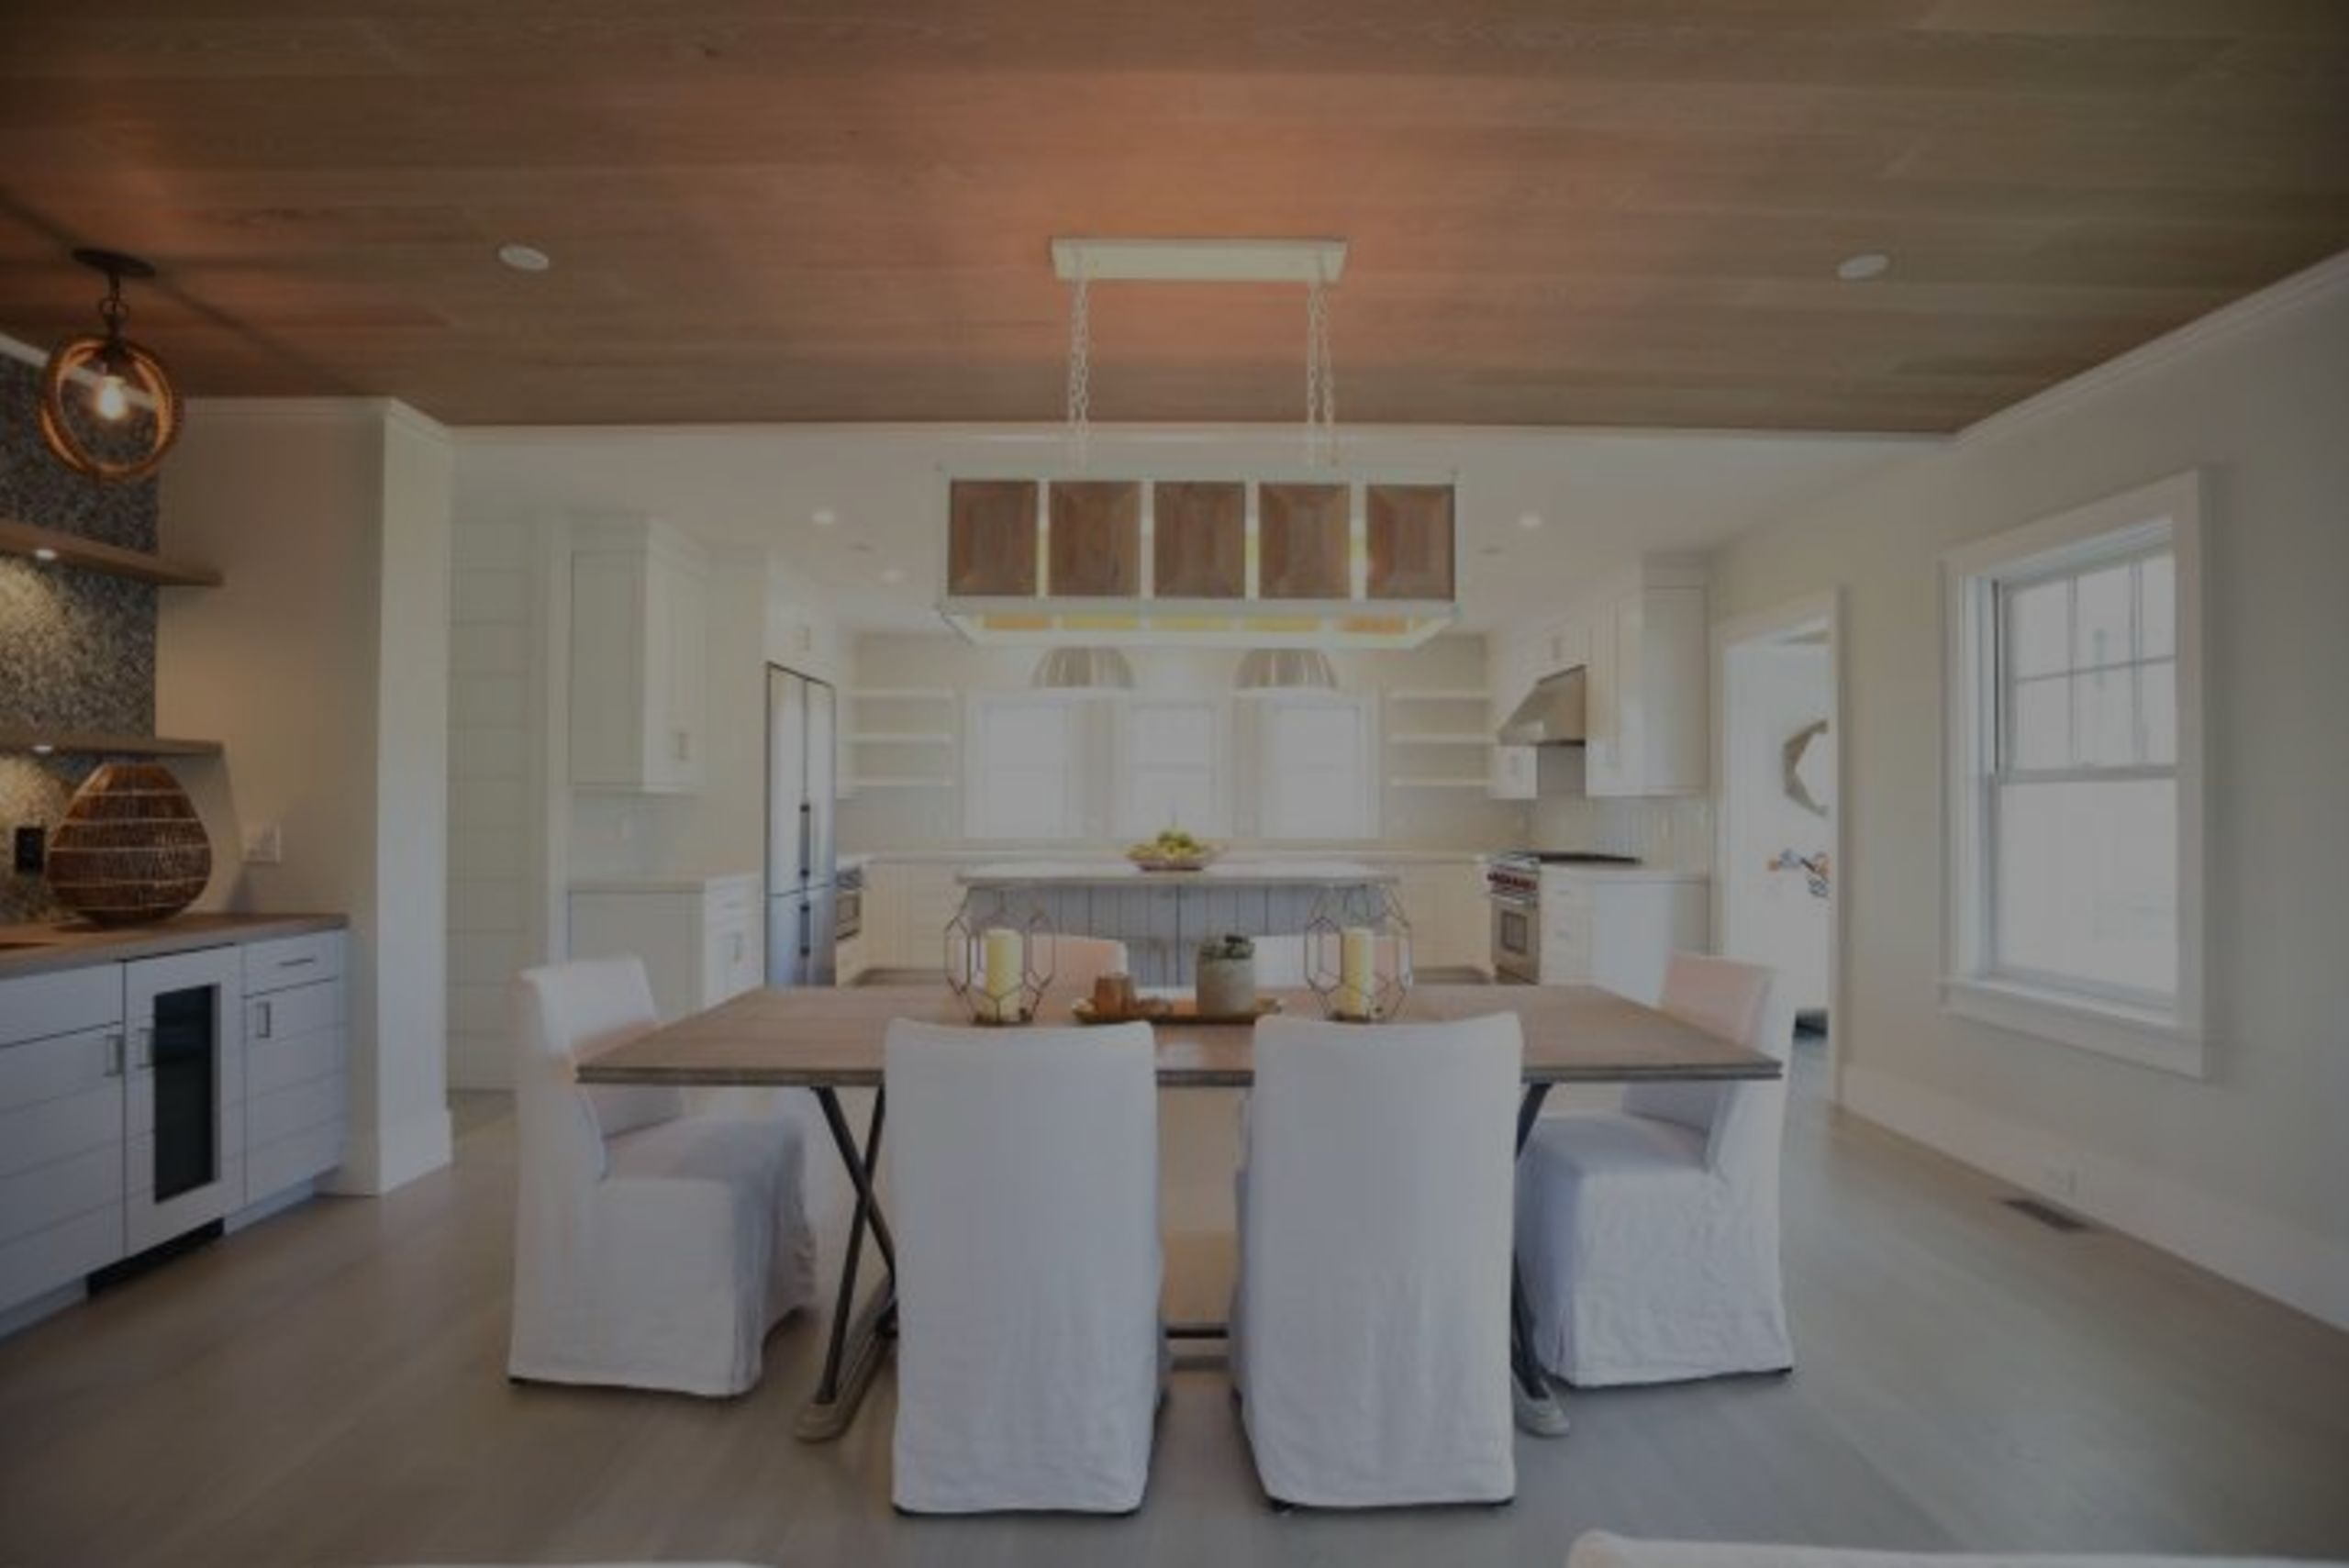 Our Top Picks of the Week: New Construction Homes on Cape Cod